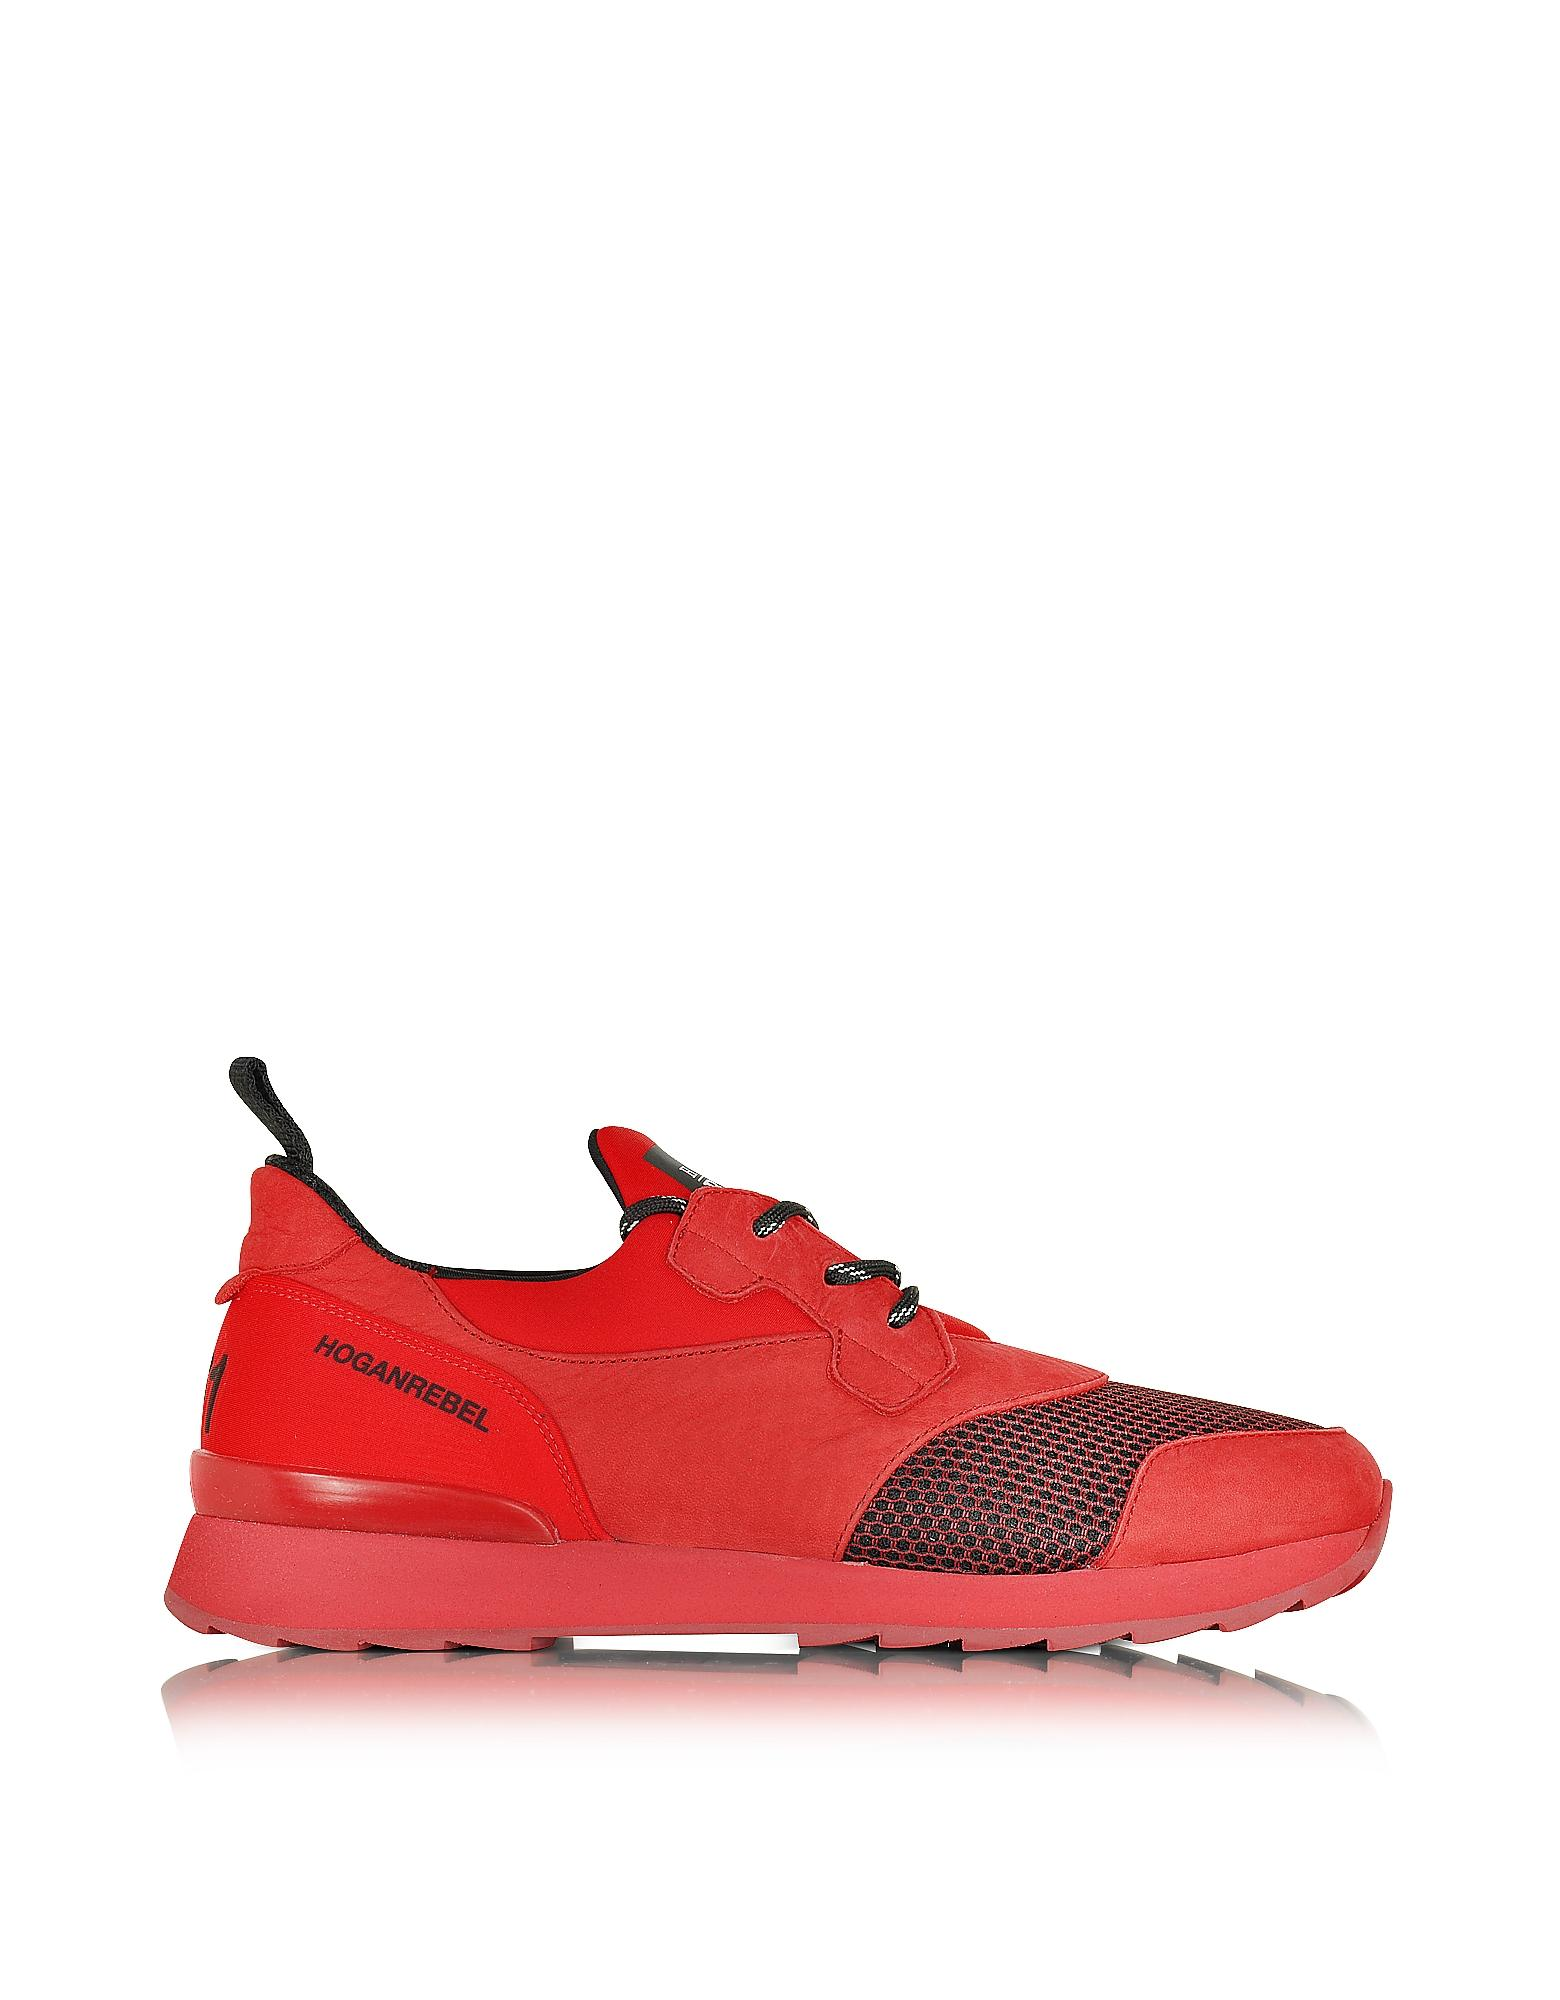 Forzieri Hogan Lyst Hogan Rebel Running R261 Red Nubuck And Neoprene